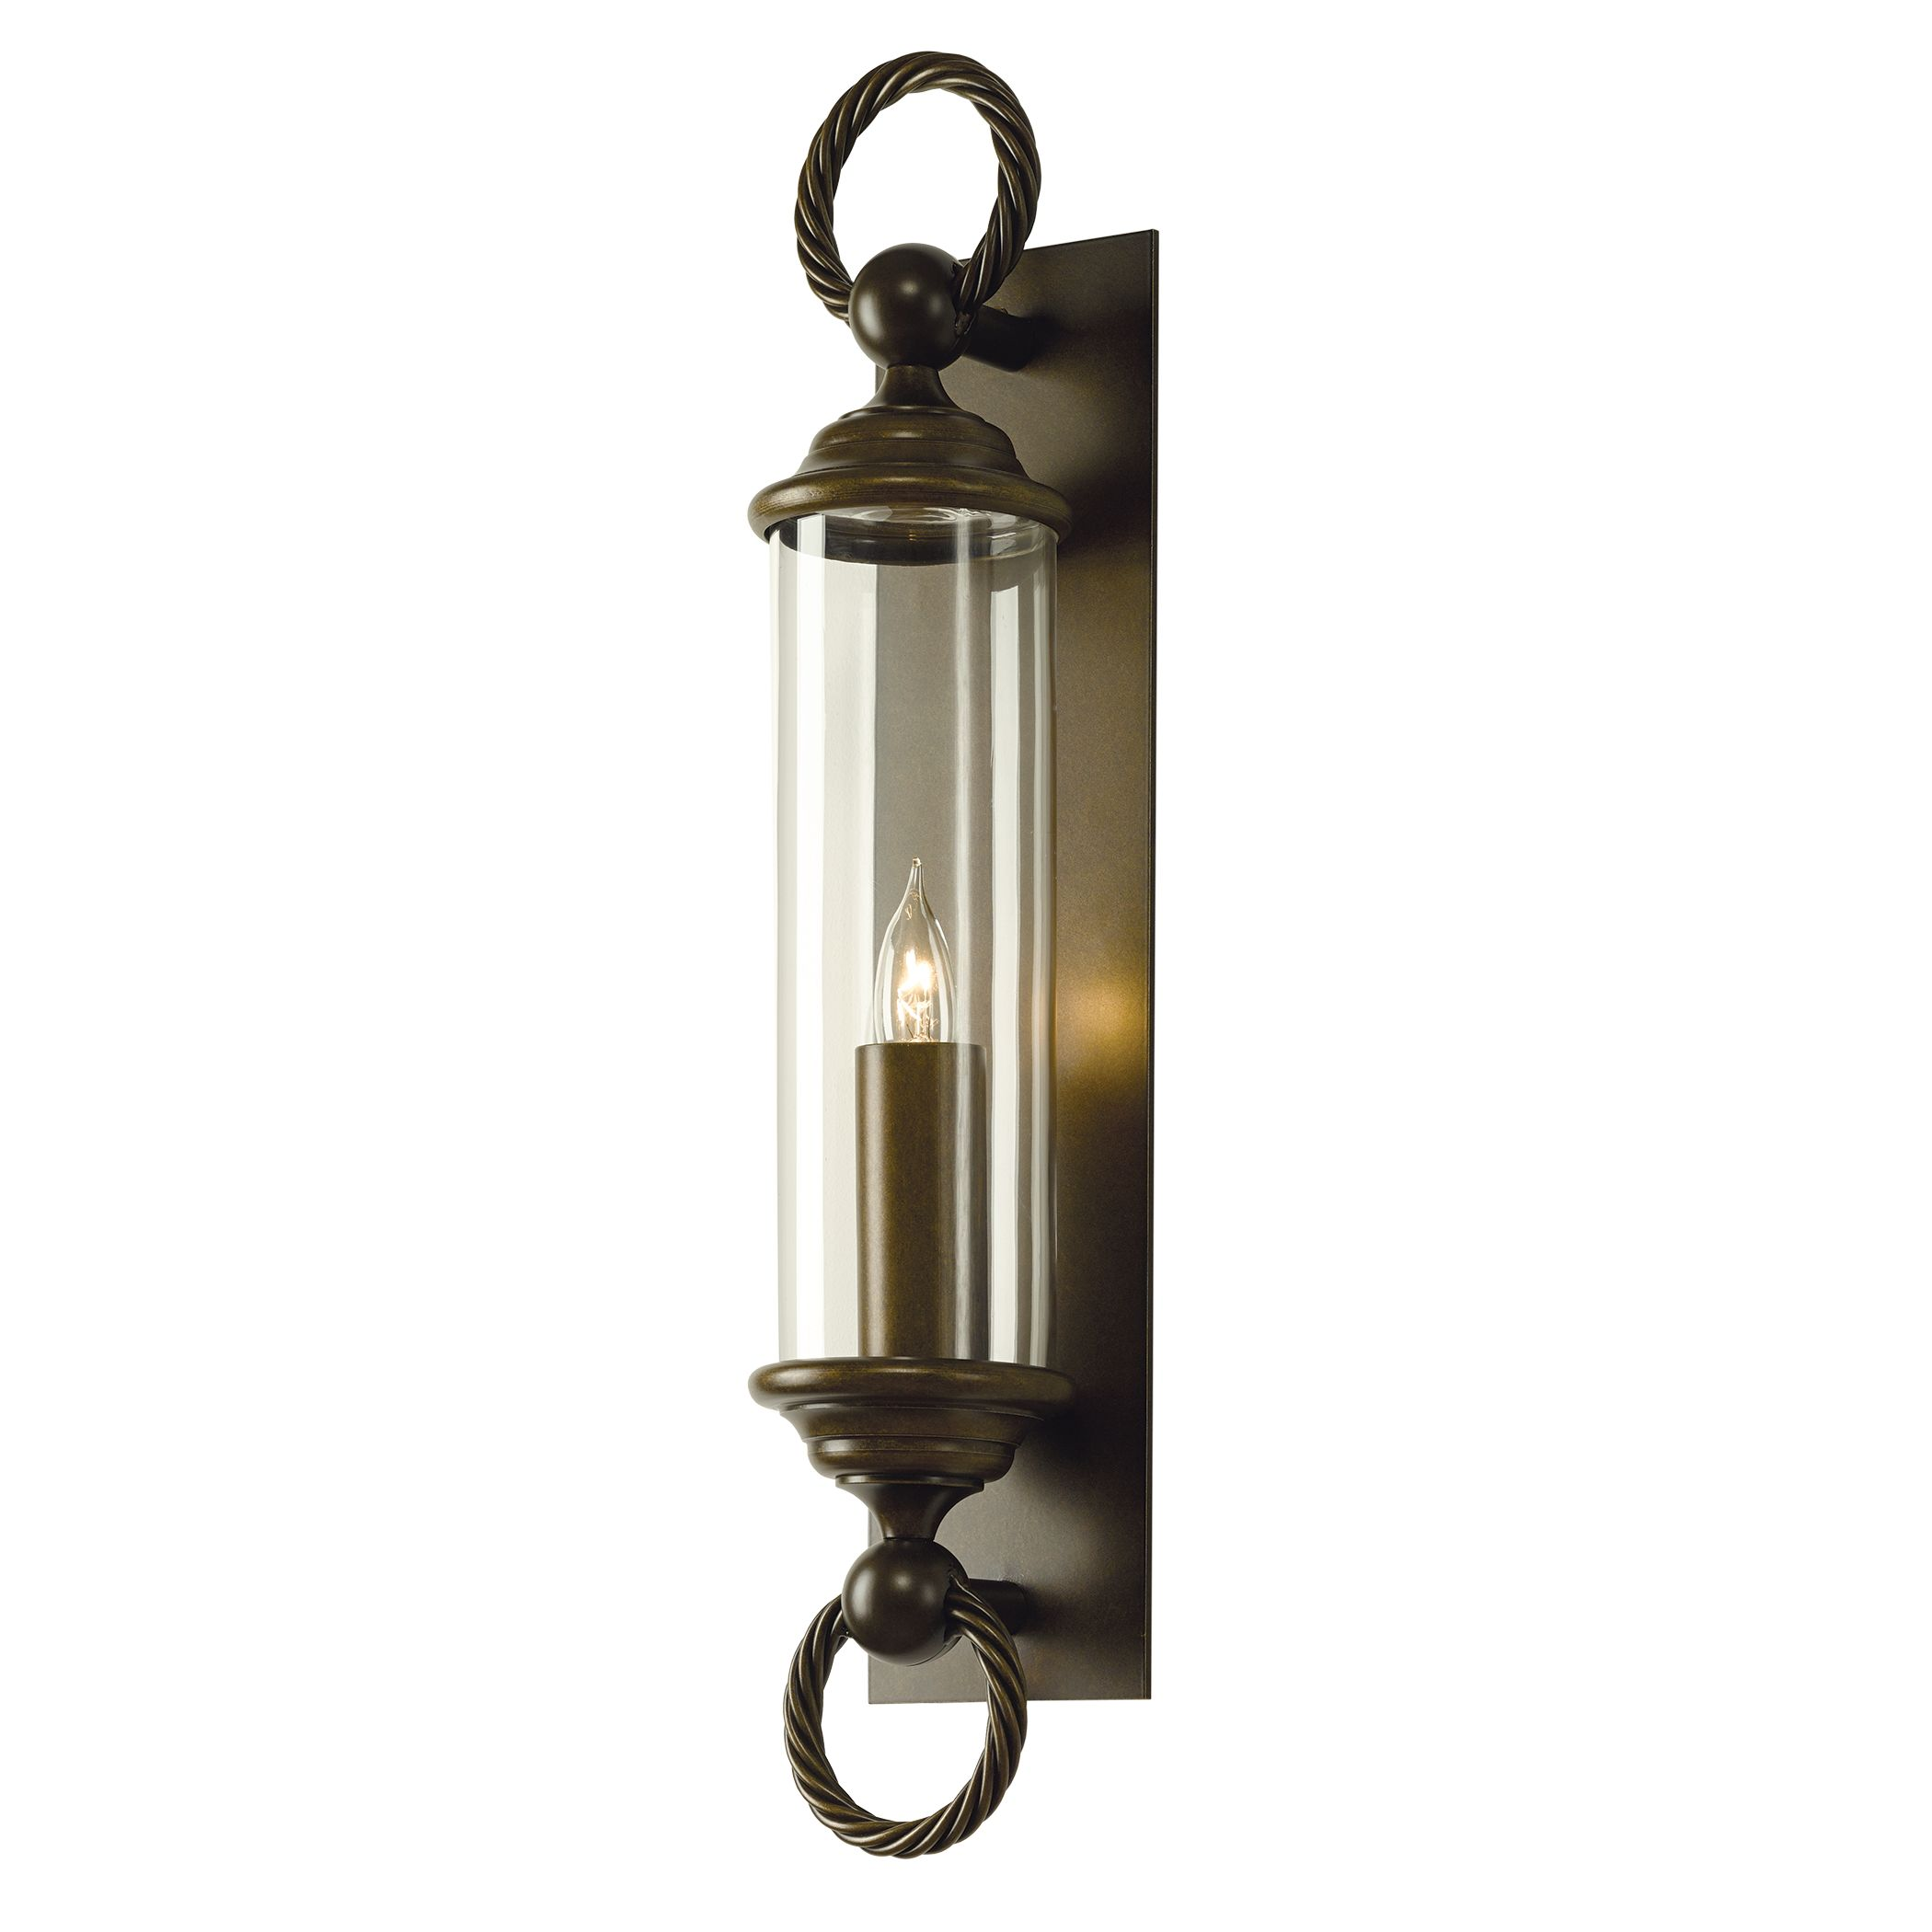 cavo large outdoor wall sconce – hubbardton forge - product detail cavo large outdoor wall sconce